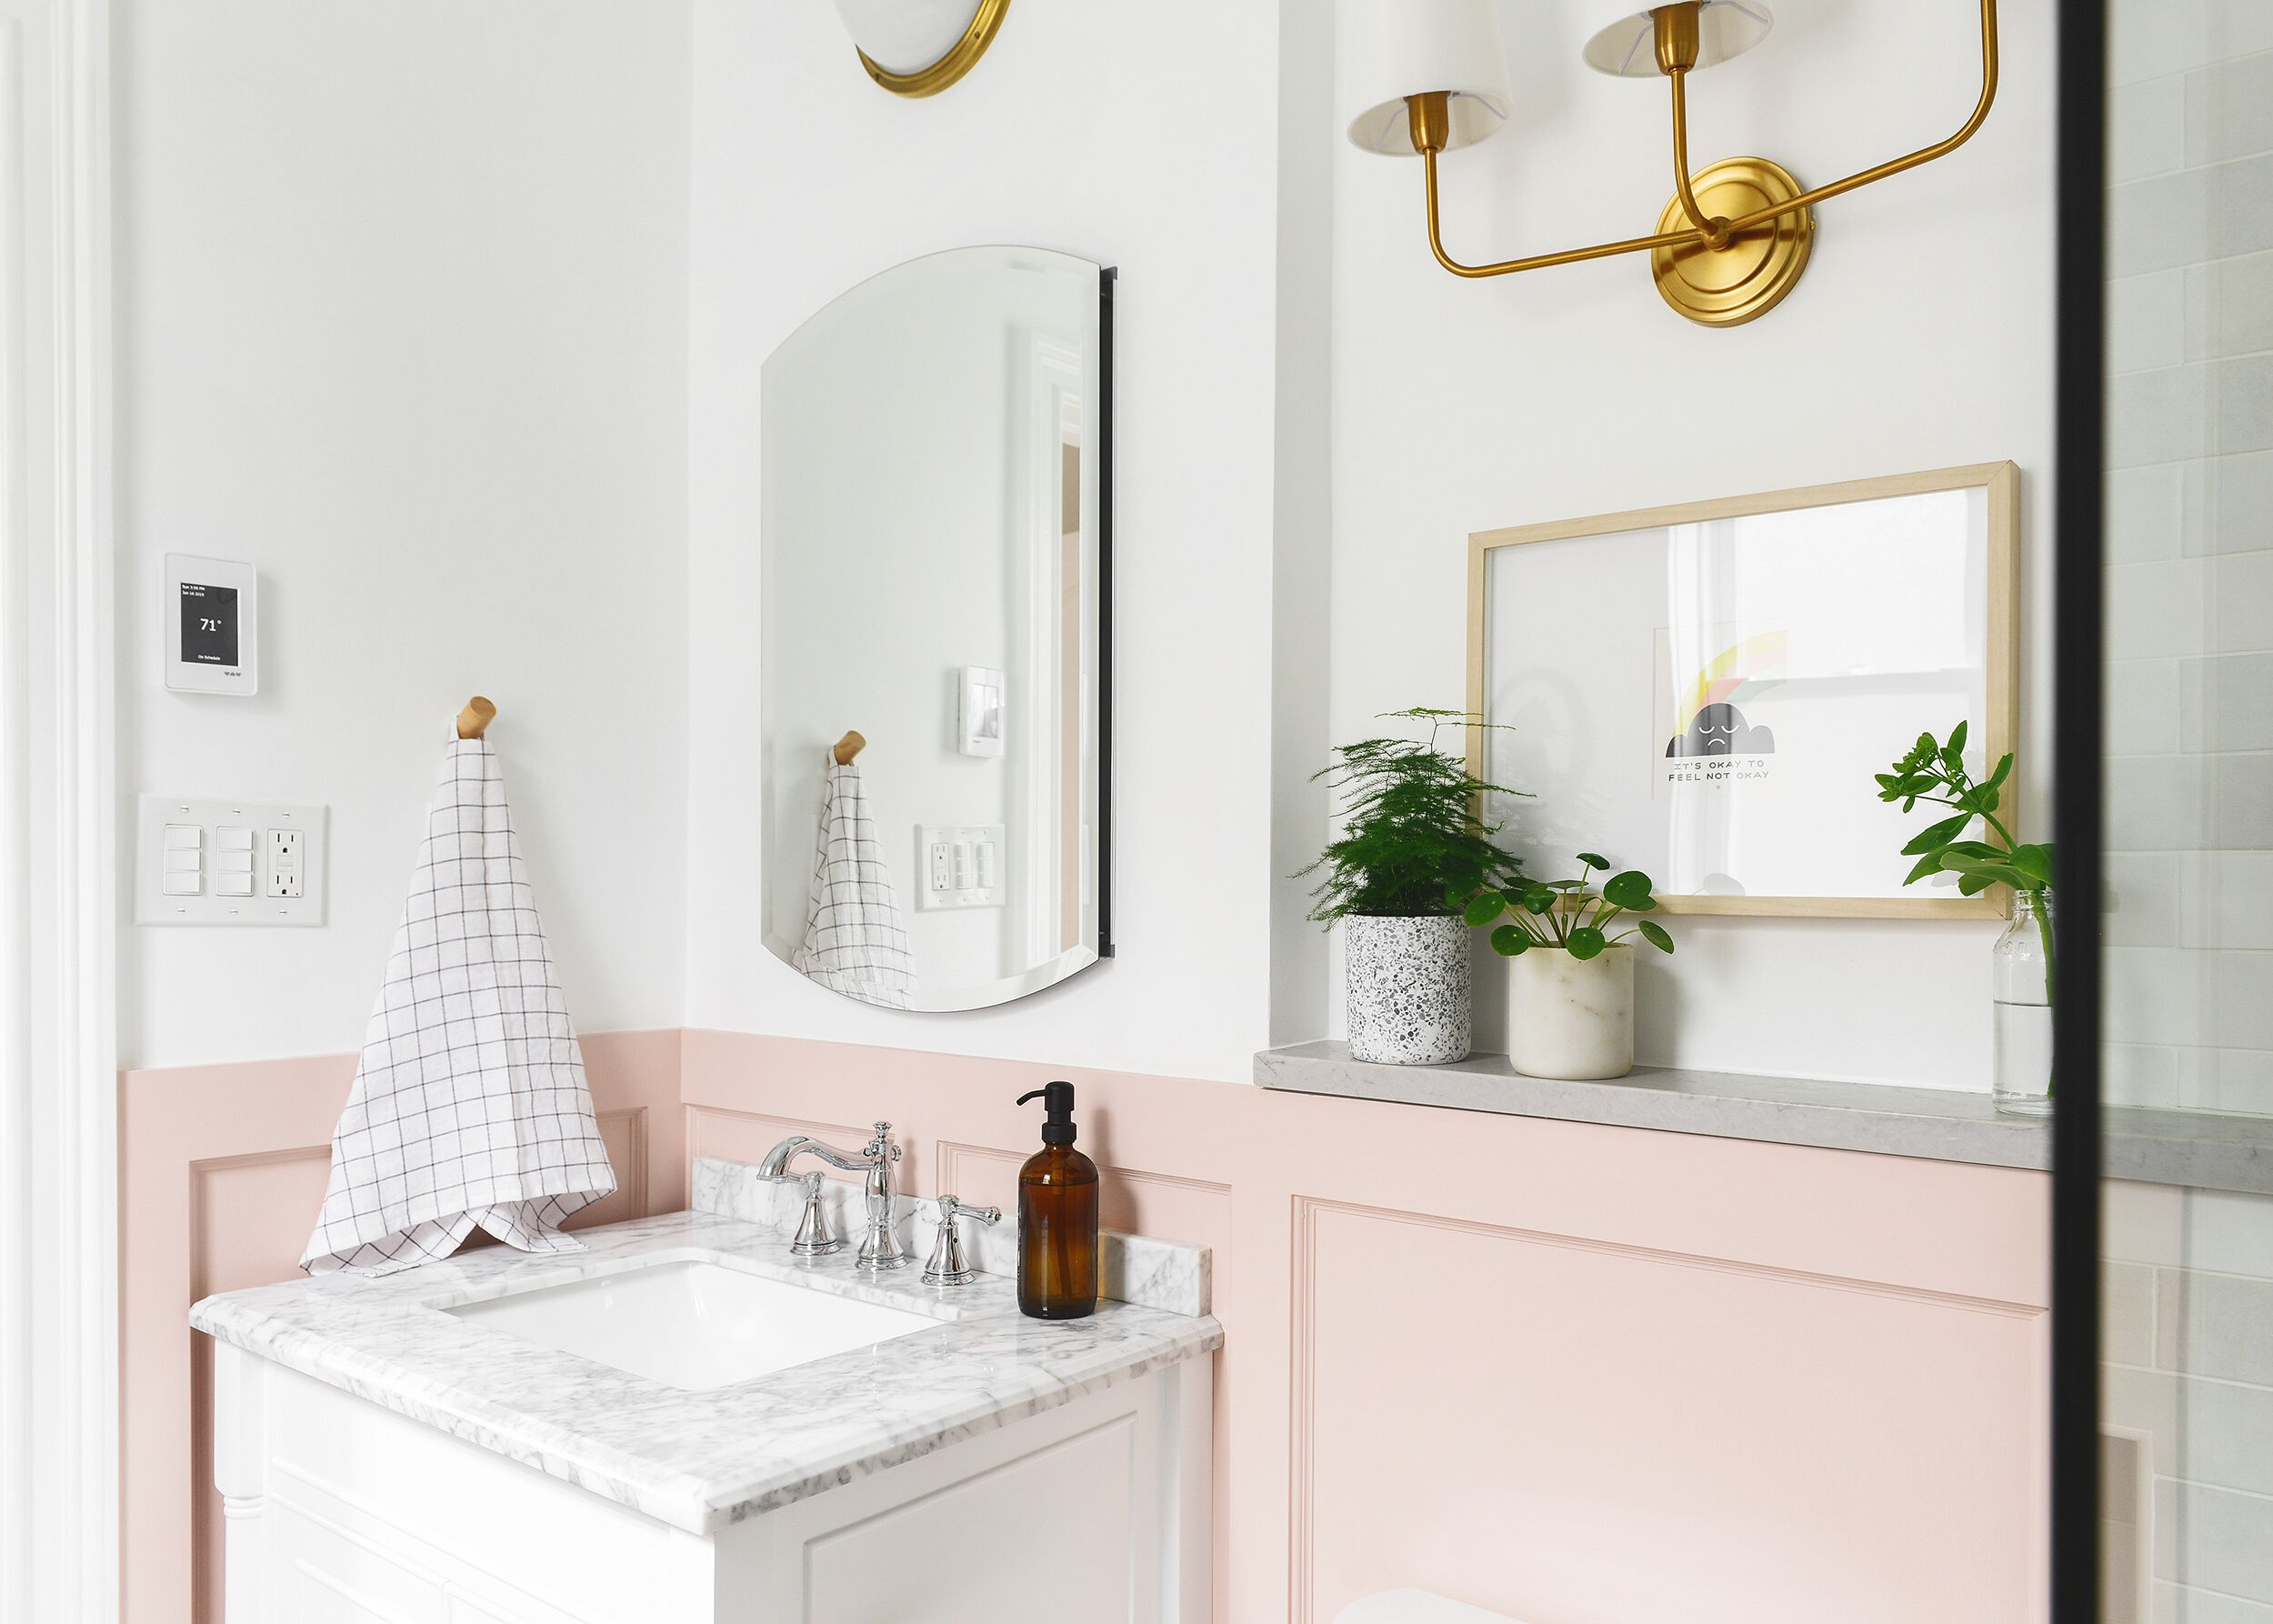 Bathroom with pink accent cabinets